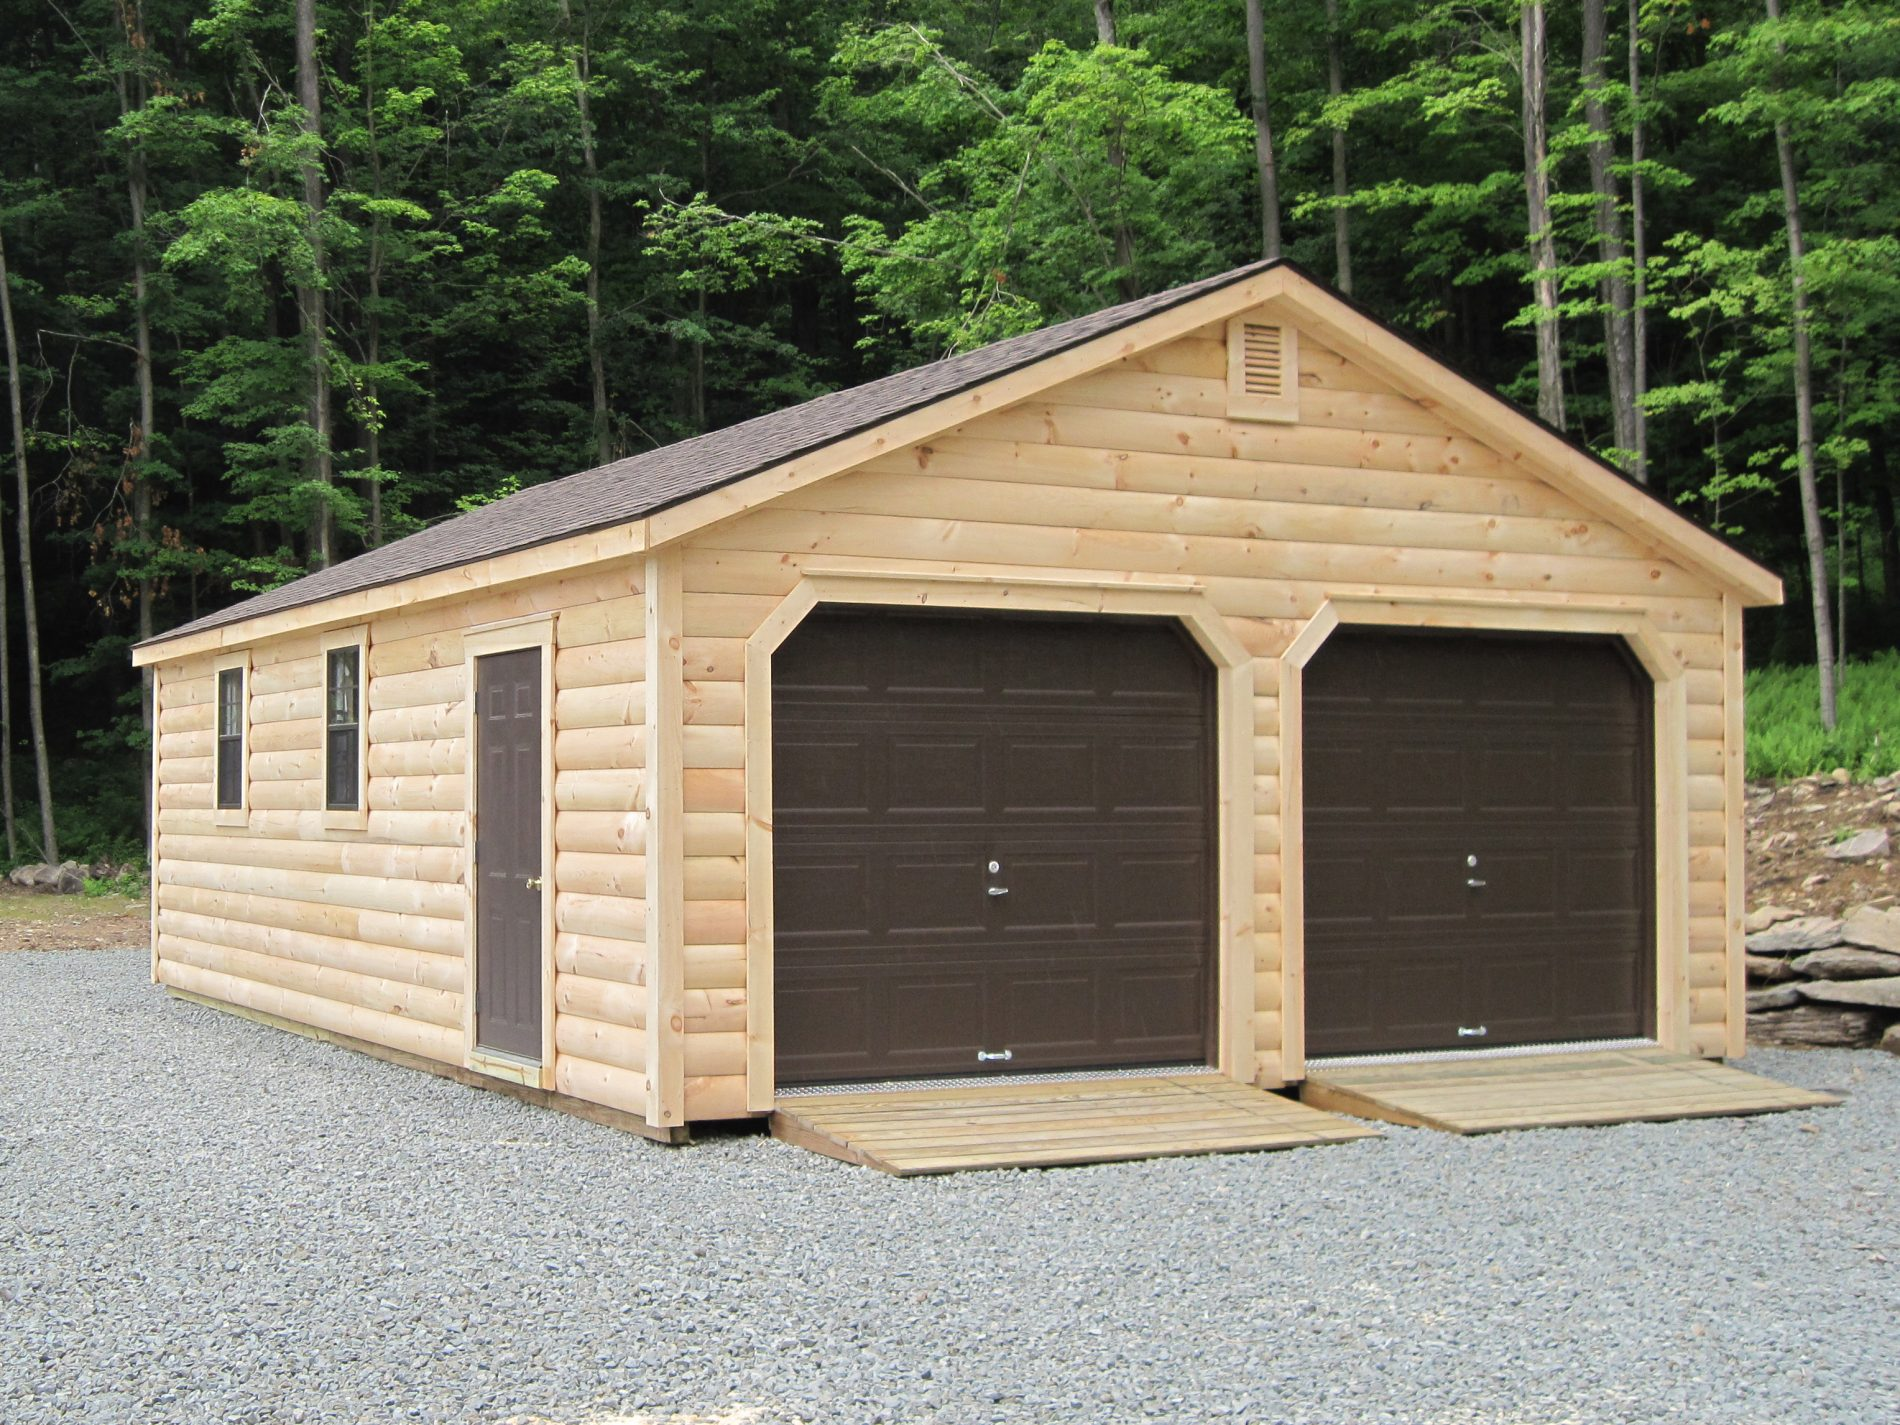 Car Garage For Sale >> Double Wide Garages 2 Car Garages For Sale Zook Cabins